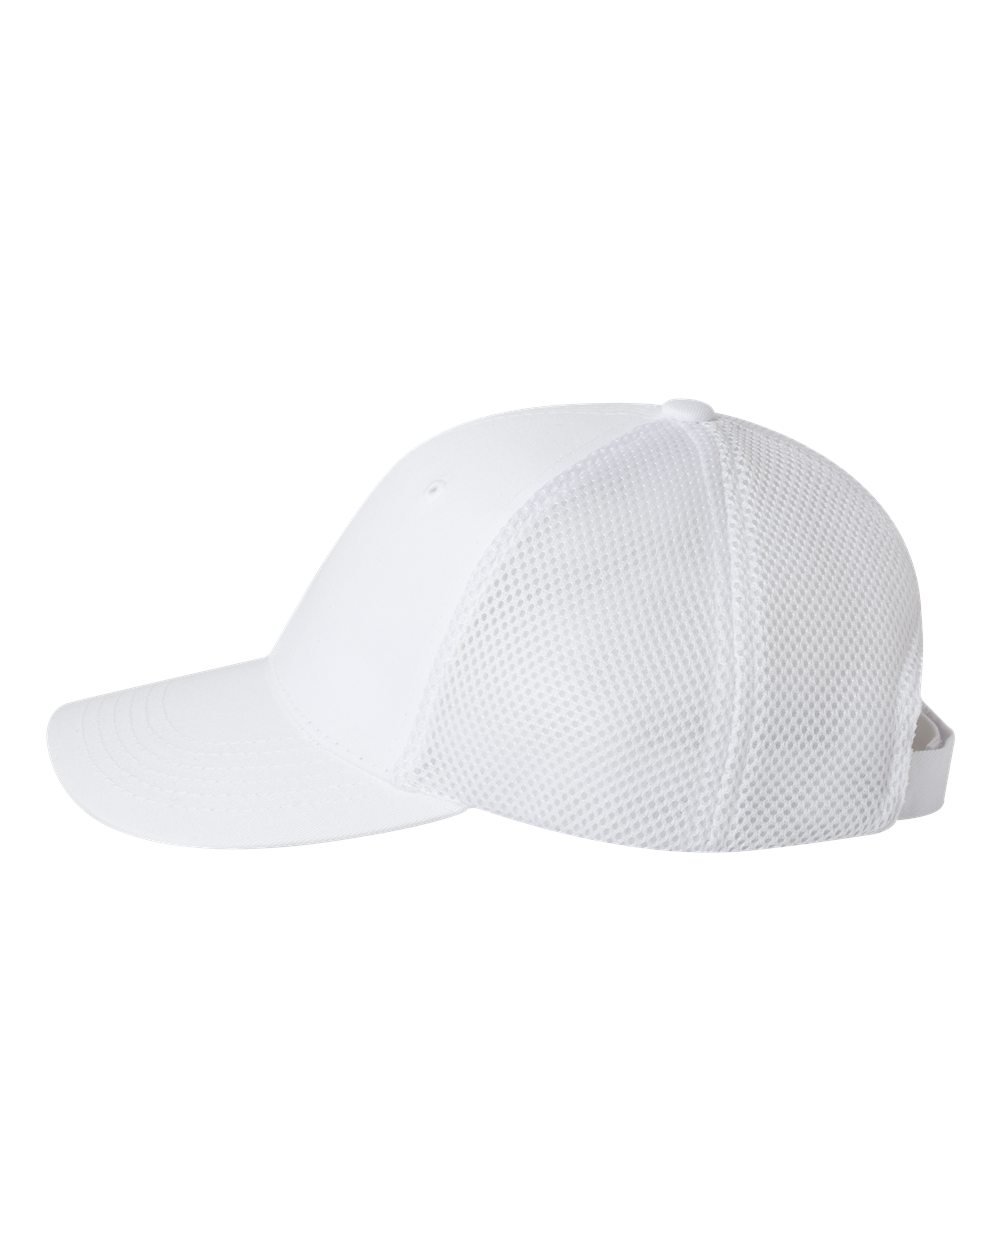 Sportsman 3200 - Spacer Mesh Cap